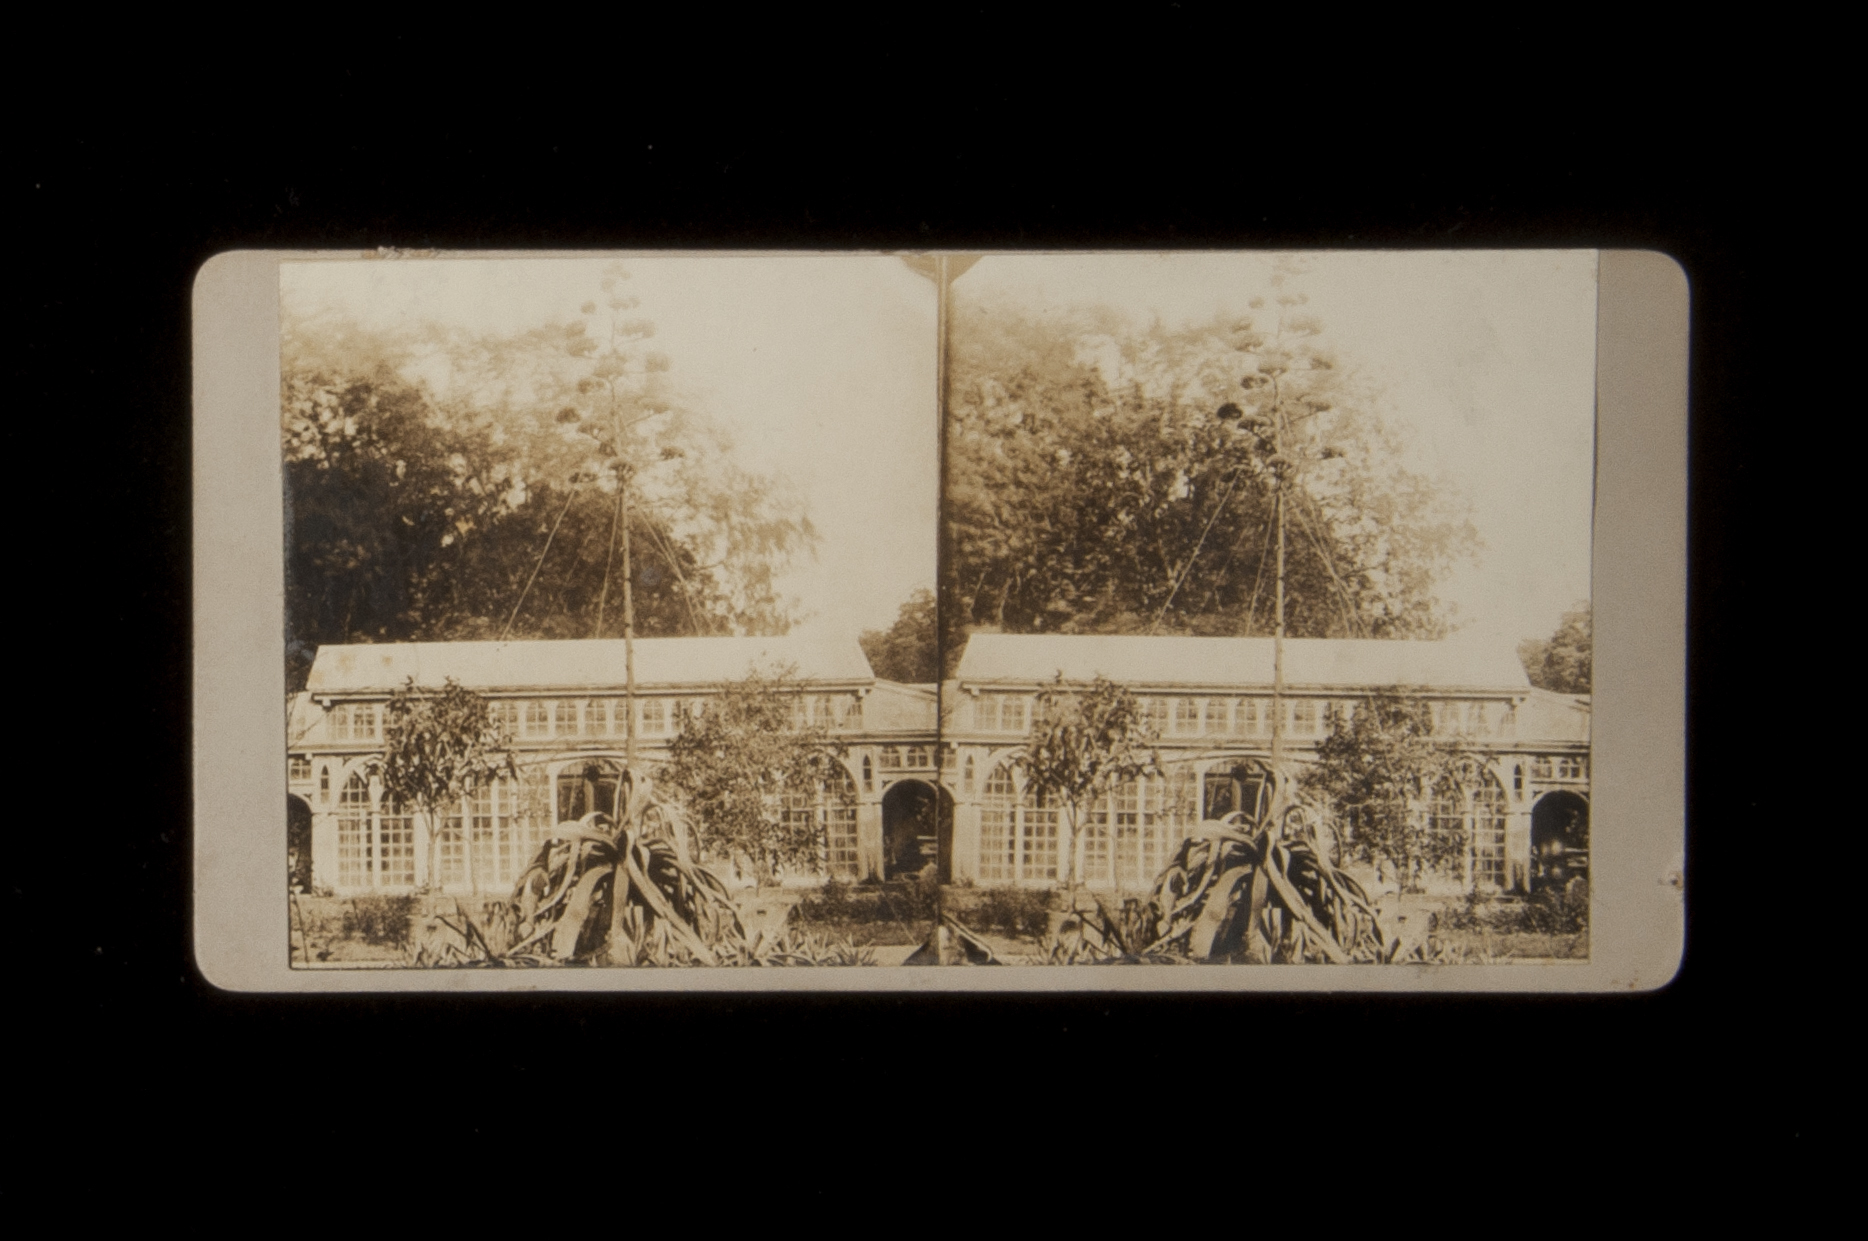 Catherwood Conservatory. Stereographic card of Century Plant (Agave americana) at Montgomery Place Conservatory, 1873.